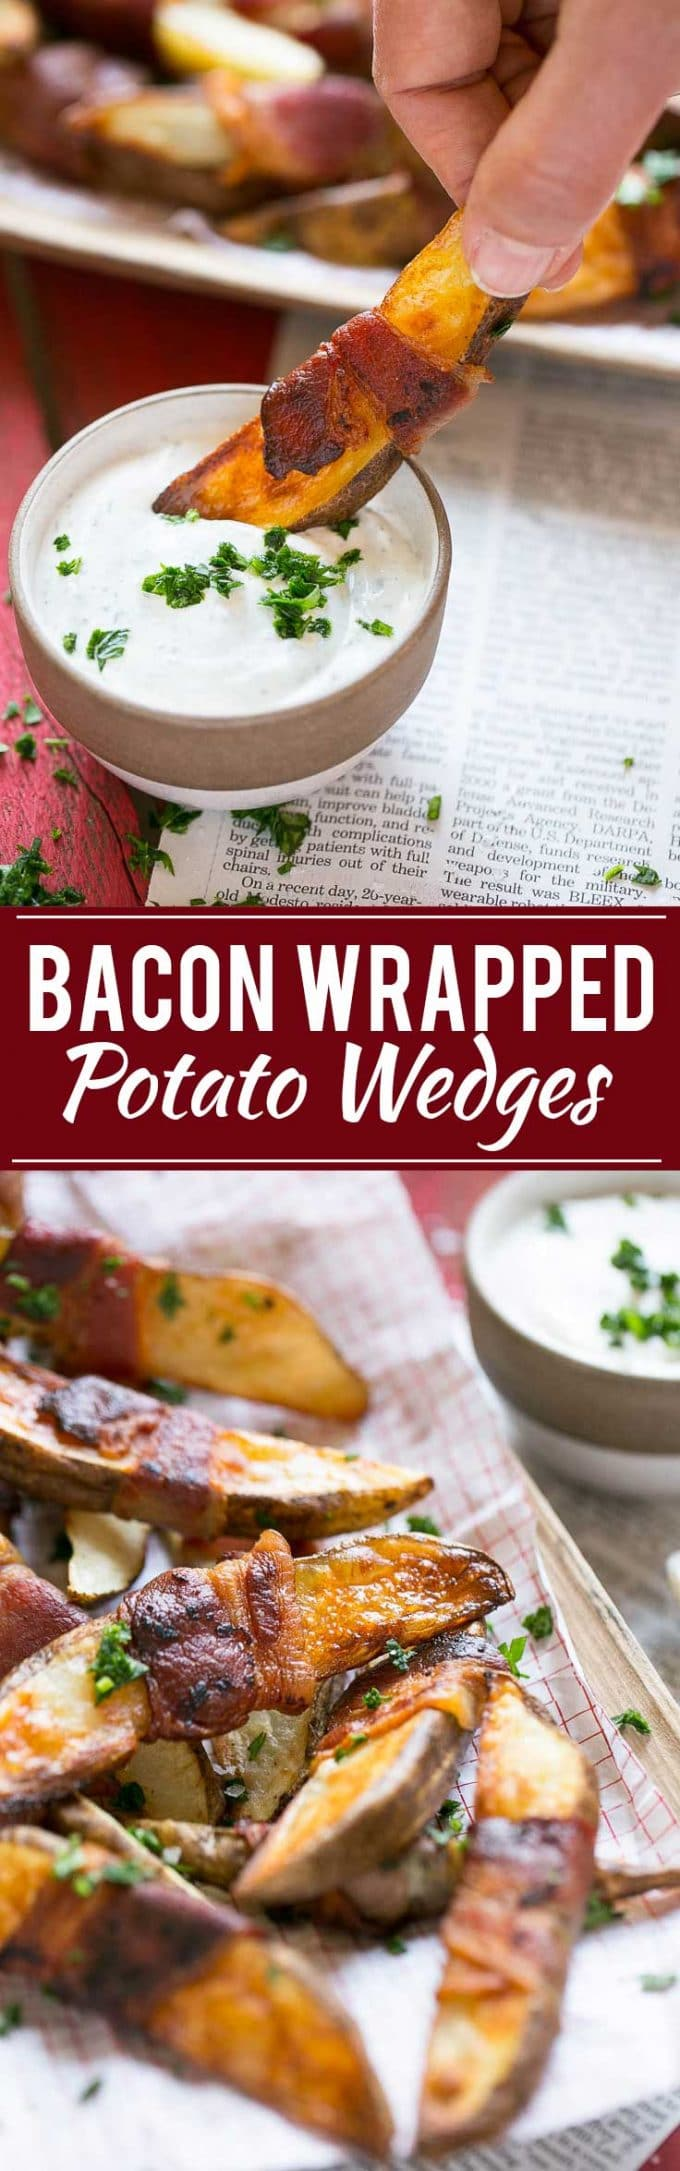 Bacon Wrapped Potato Wedges Recipe | Best Potato Wedges | Bacon Wrapped French Fries | Bacon Potato Wedges